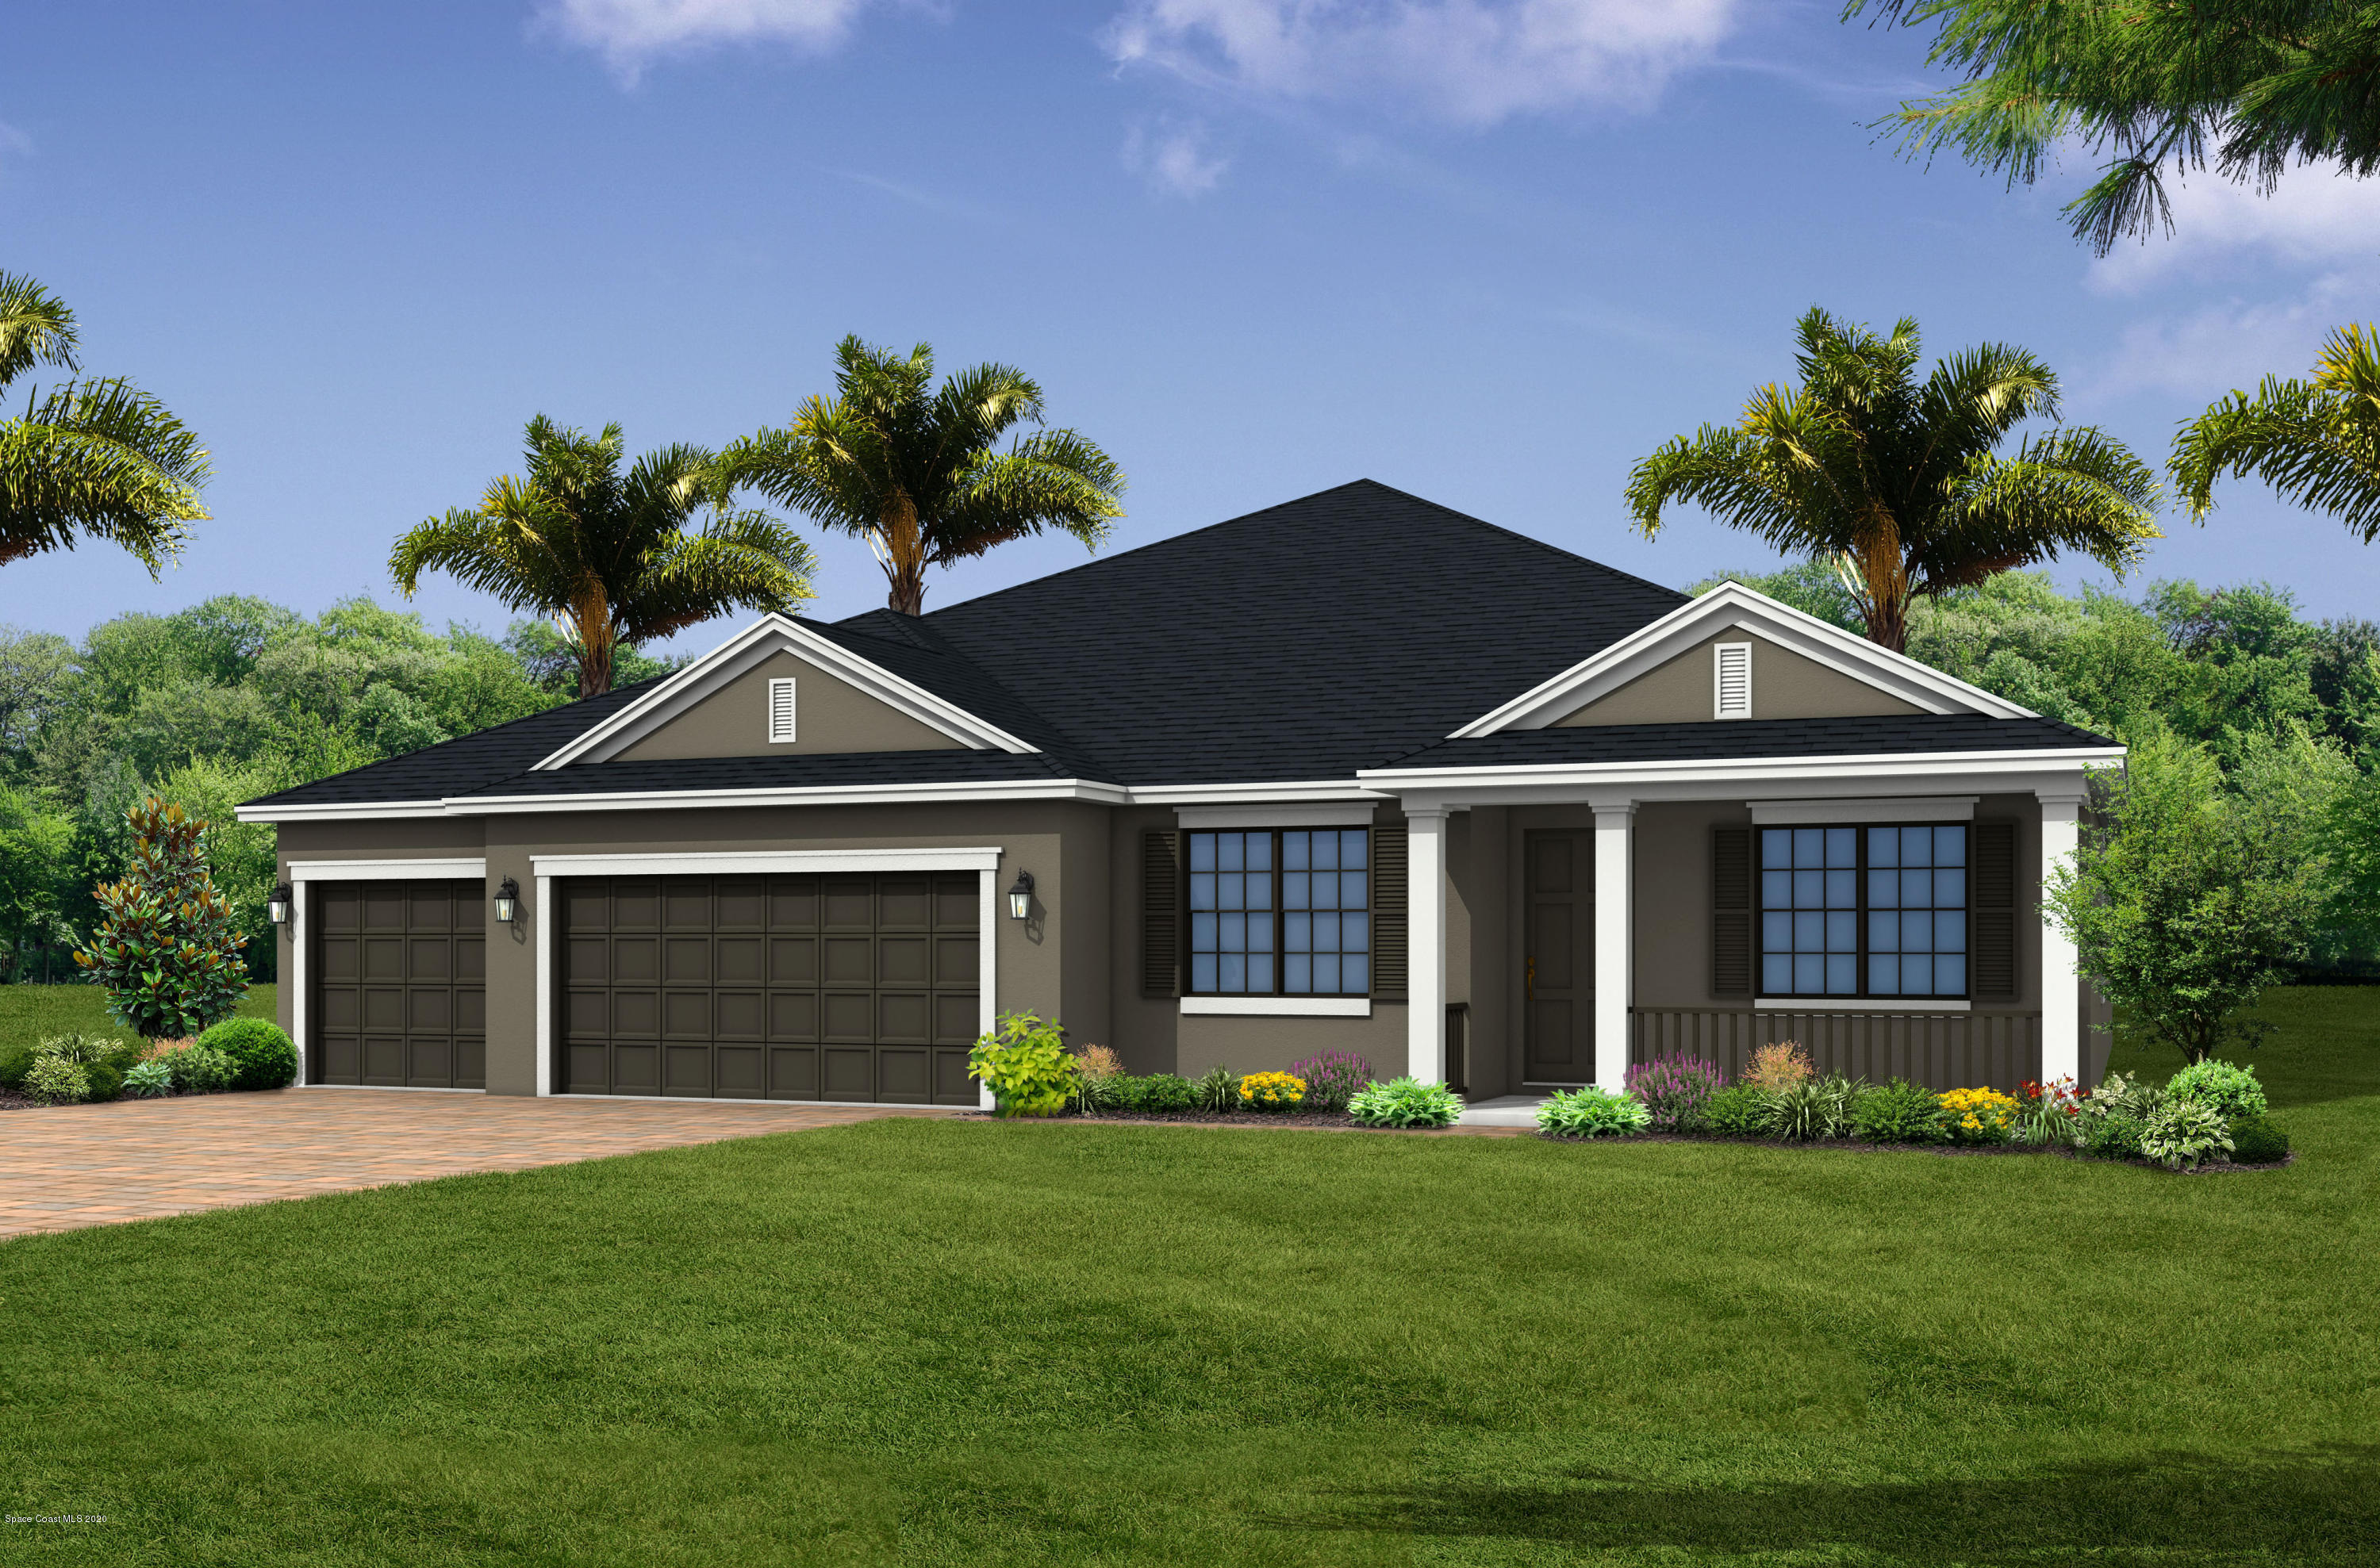 Photo of 3021 Boravica Place, Melbourne, FL 32940 (MLS # 872034)